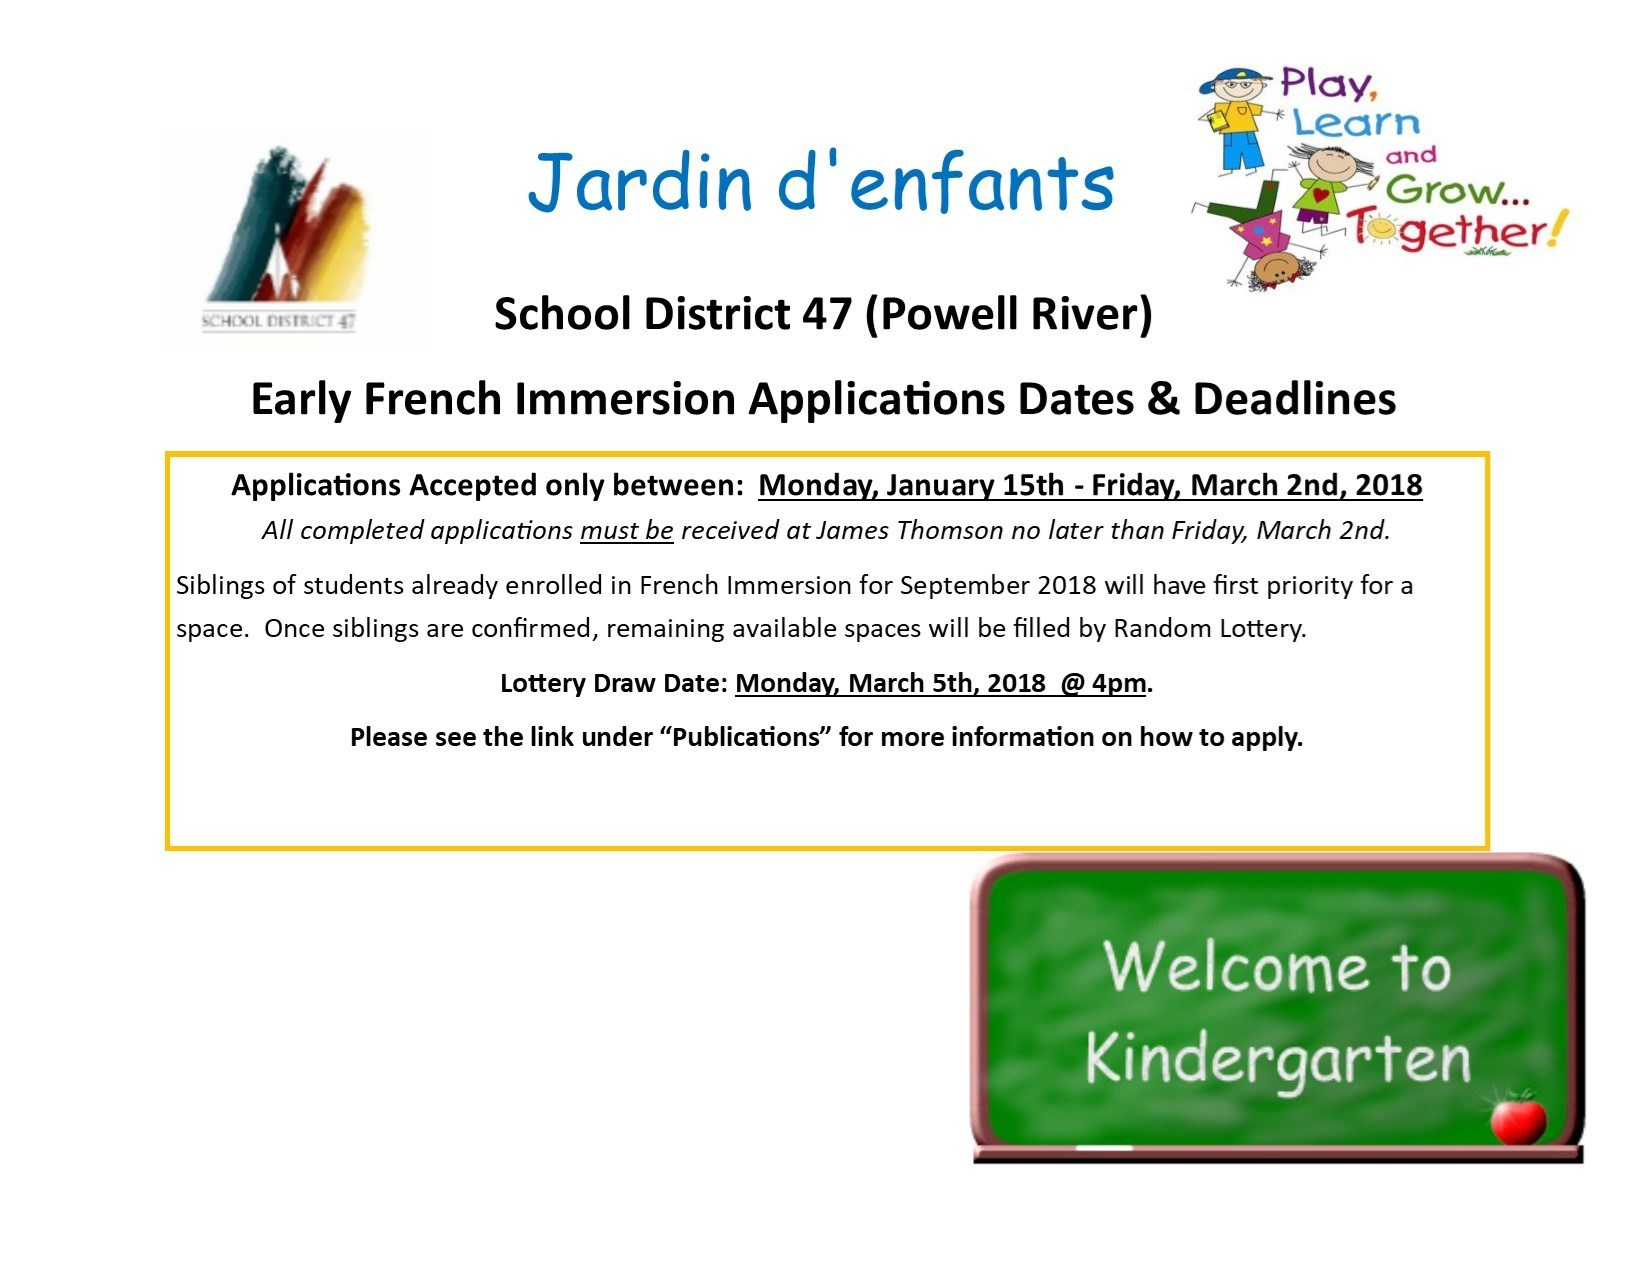 French Immersion Applications Accepted Jan 15th - Mar 2nd, 2018